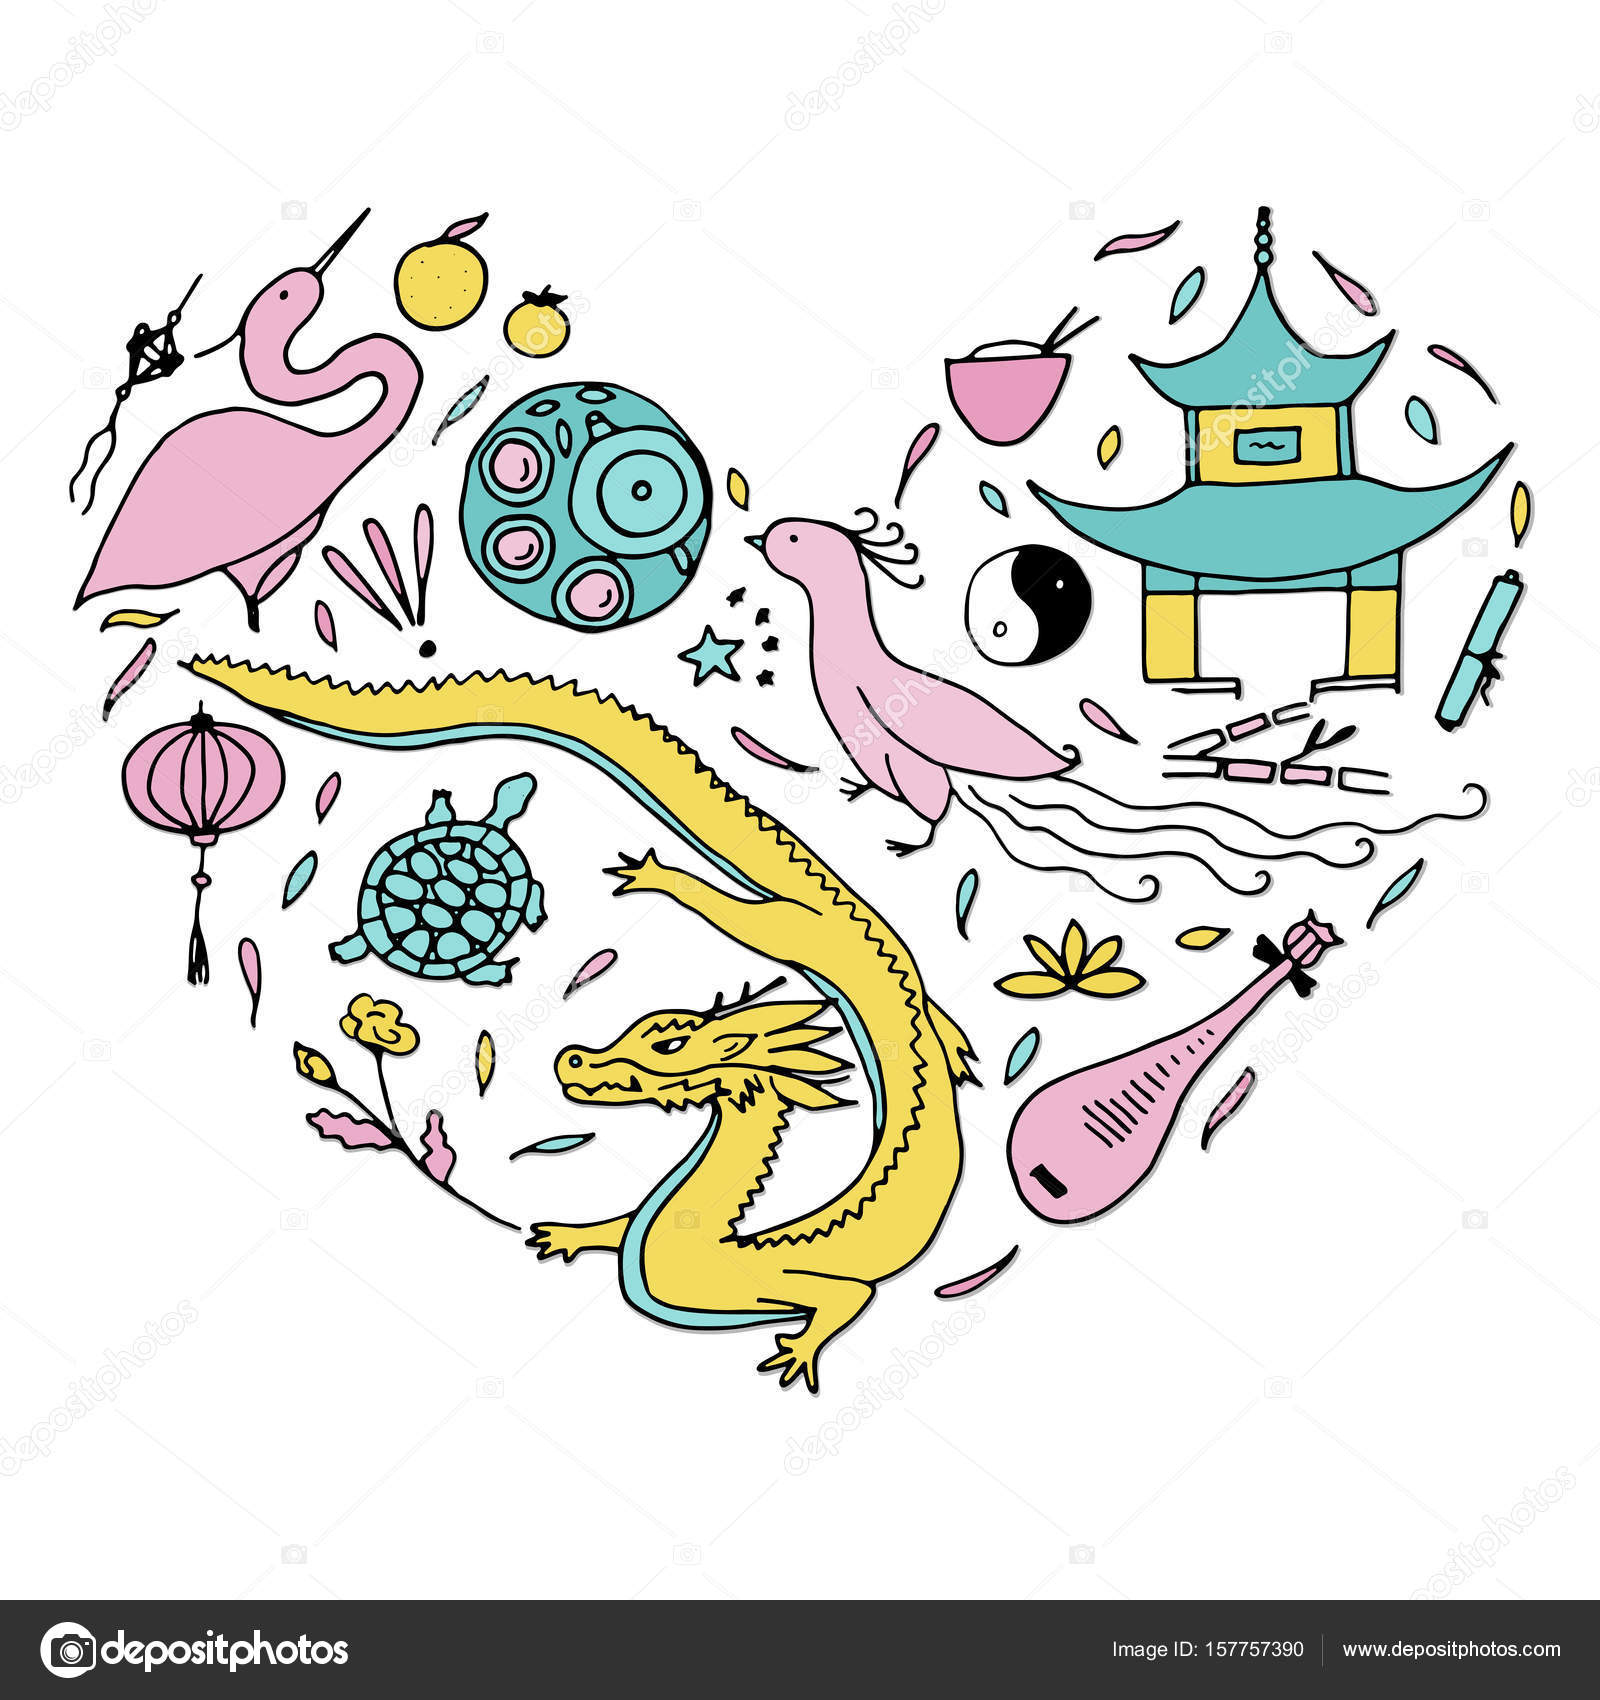 Culture of china in the form of heart hand drawn chinese symbol culture of china in the form of heart hand drawn chinese symbol stock vector buycottarizona